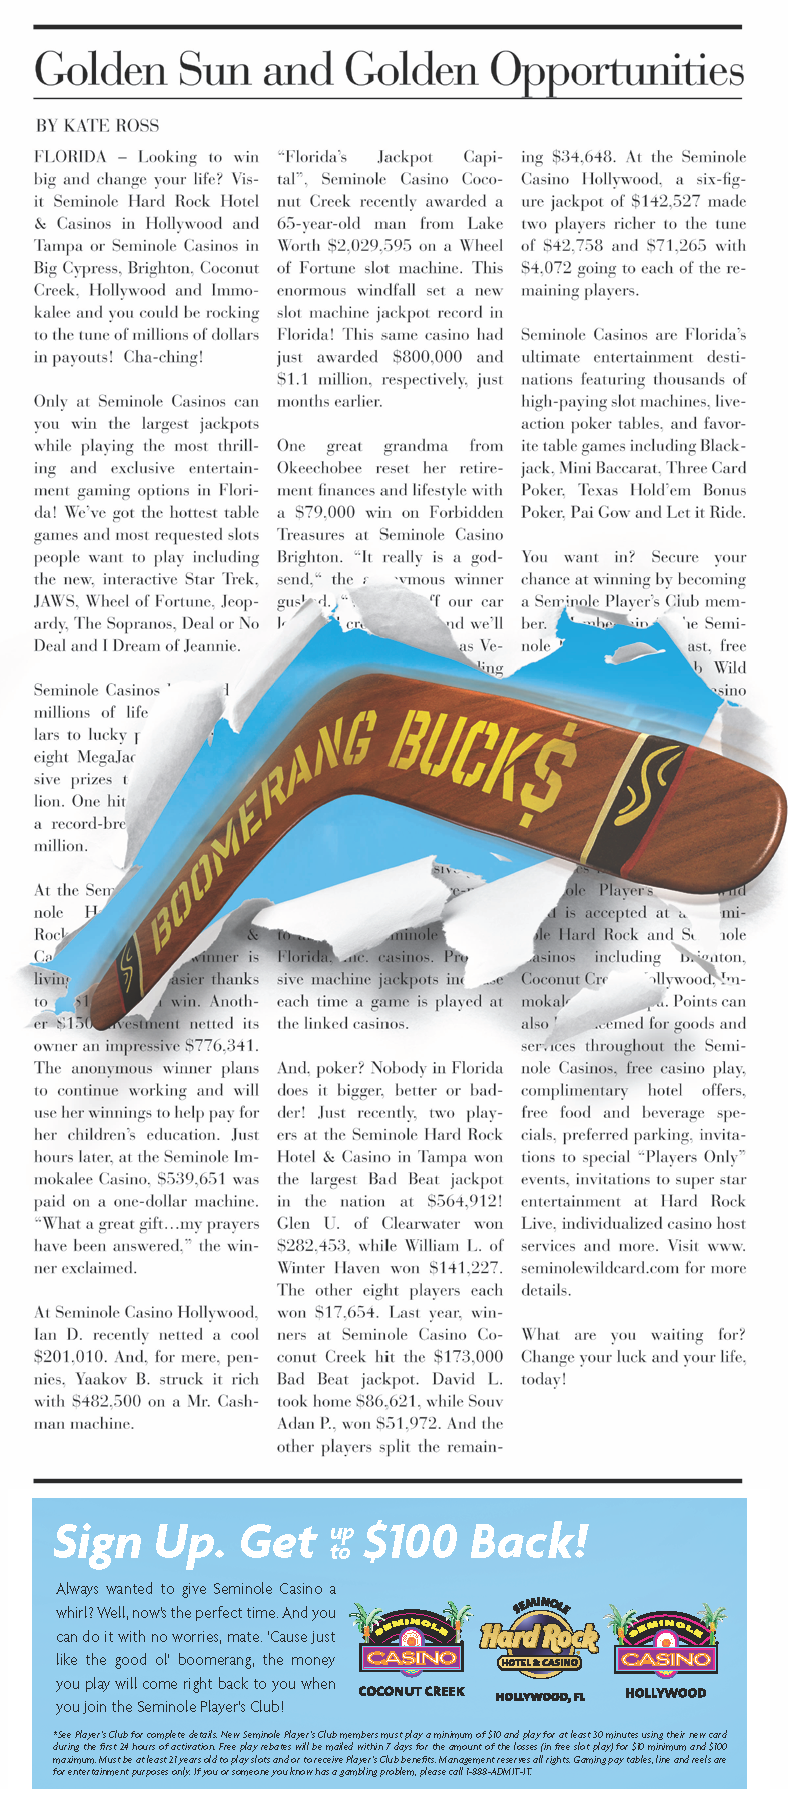 Print Ad, Boomerang Bucks  Creative Agency: Concussion Client: Seminole Gaming  http://www.concussion.net/